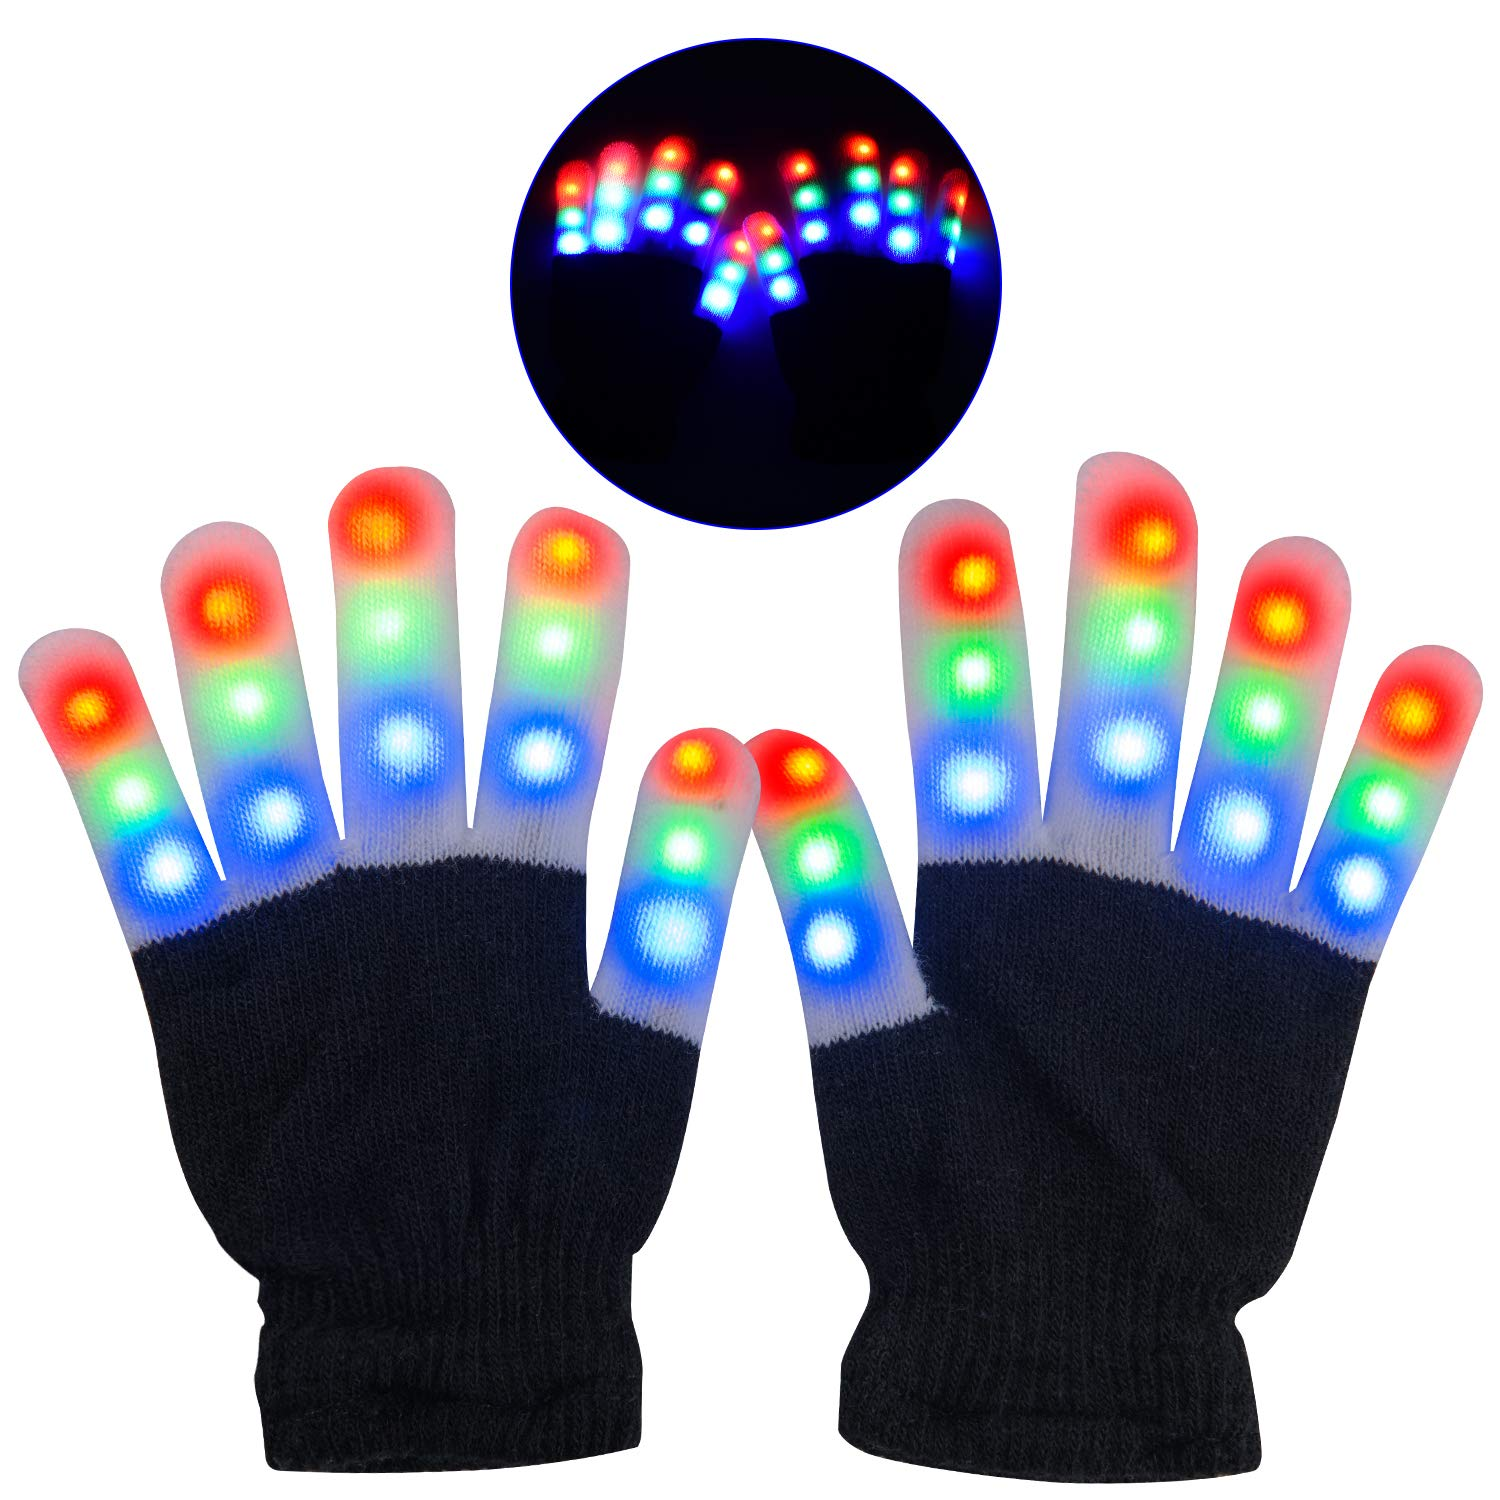 Yostyle Children's LED Light Gloves (Black, Sm)